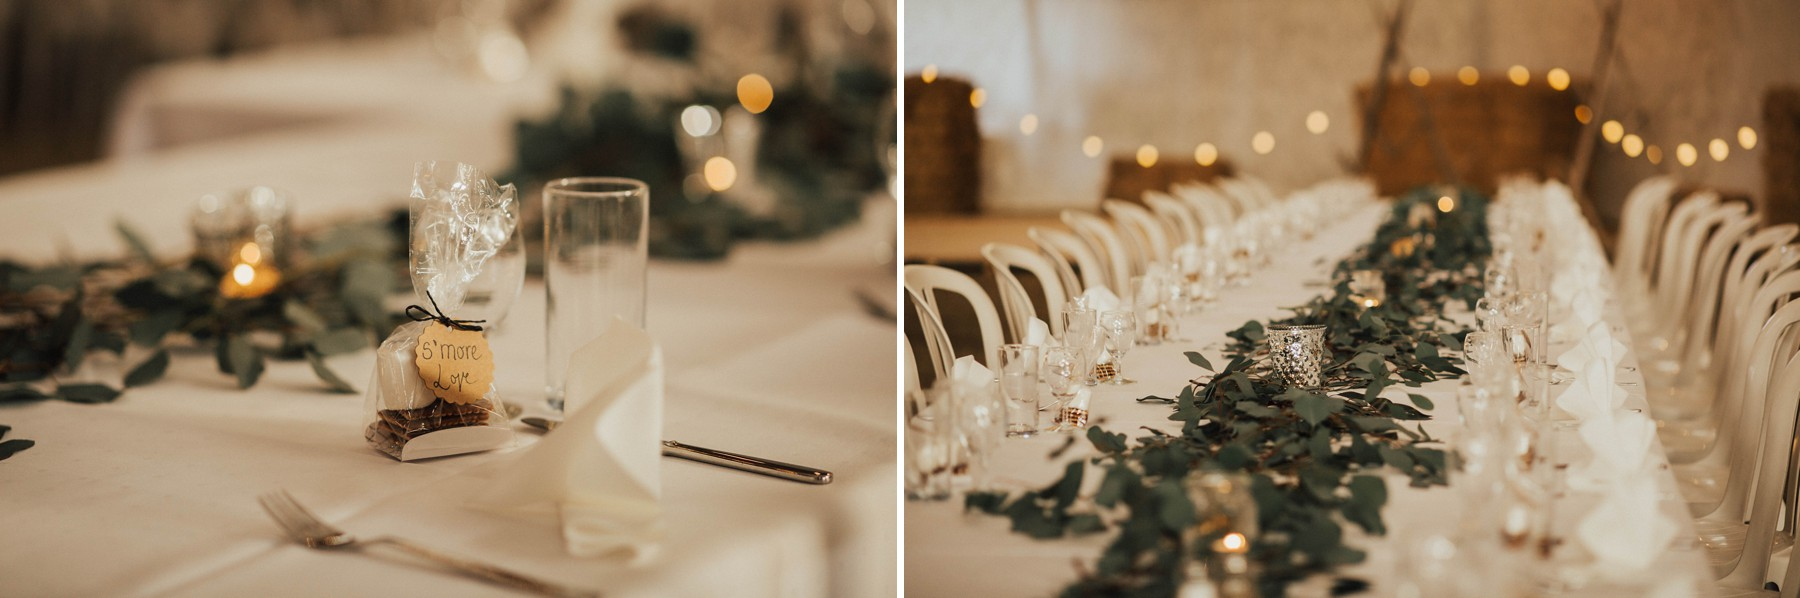 beautiful minimalism wedding decoration